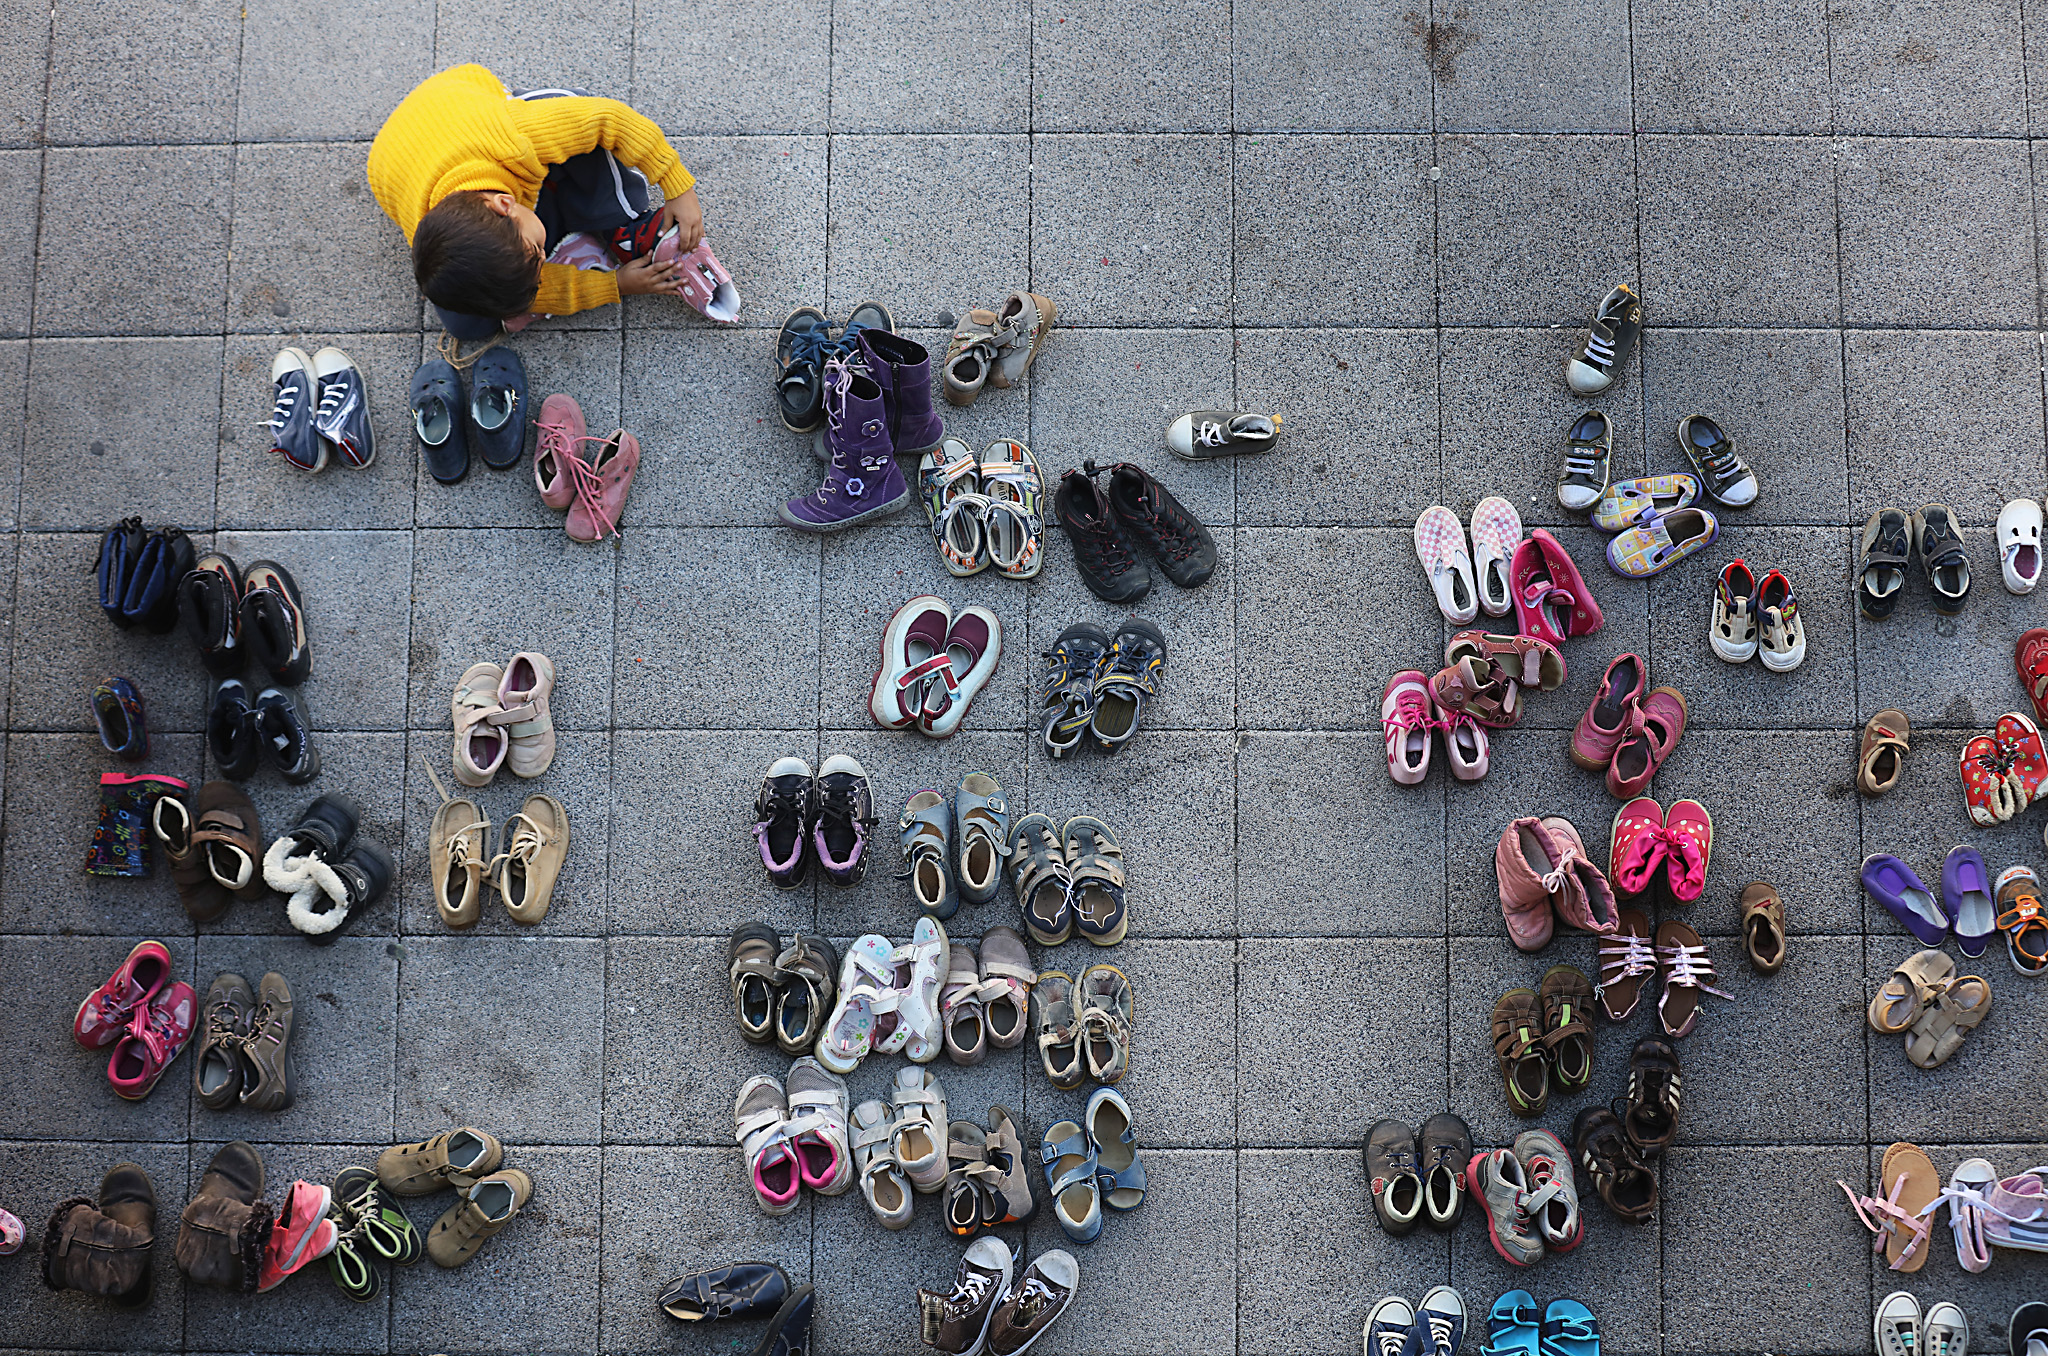 Migrants Continue To Arrive In Hungary...BUDAPEST, HUNGARY - SEPTEMBER 07:  A young migrant boy tries on shoes donated by the people of Hungary at Keleti station in Budapest on September 7, 2015 in Budapest, Hungary. After days of confrontation and chaos, Hungary unexpectedly opened its borders with Austria, allowing thousands of migrants to leave the country and travel onto Germany. (Photo by Christopher Furlong/Getty Images)